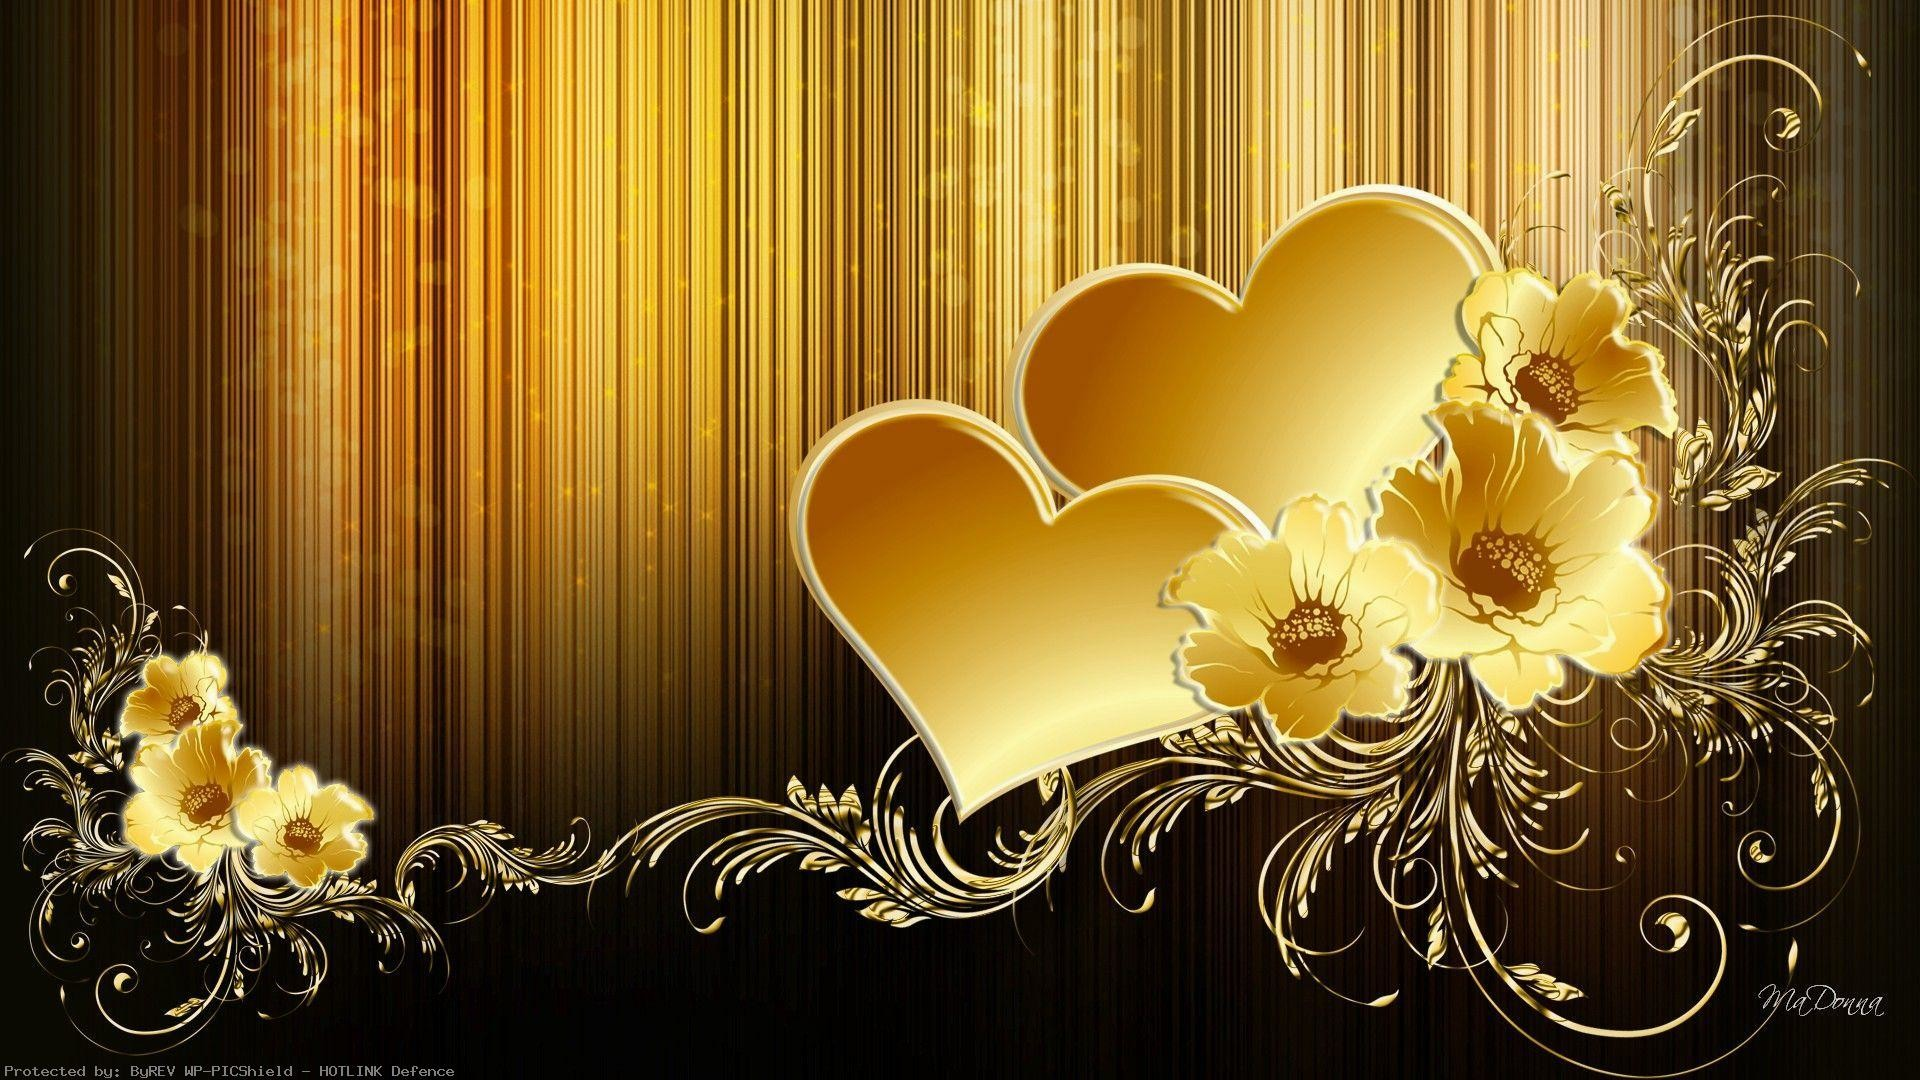 Gold-Widescreen-QIq-Kenikin-wallpaper-wp8007205